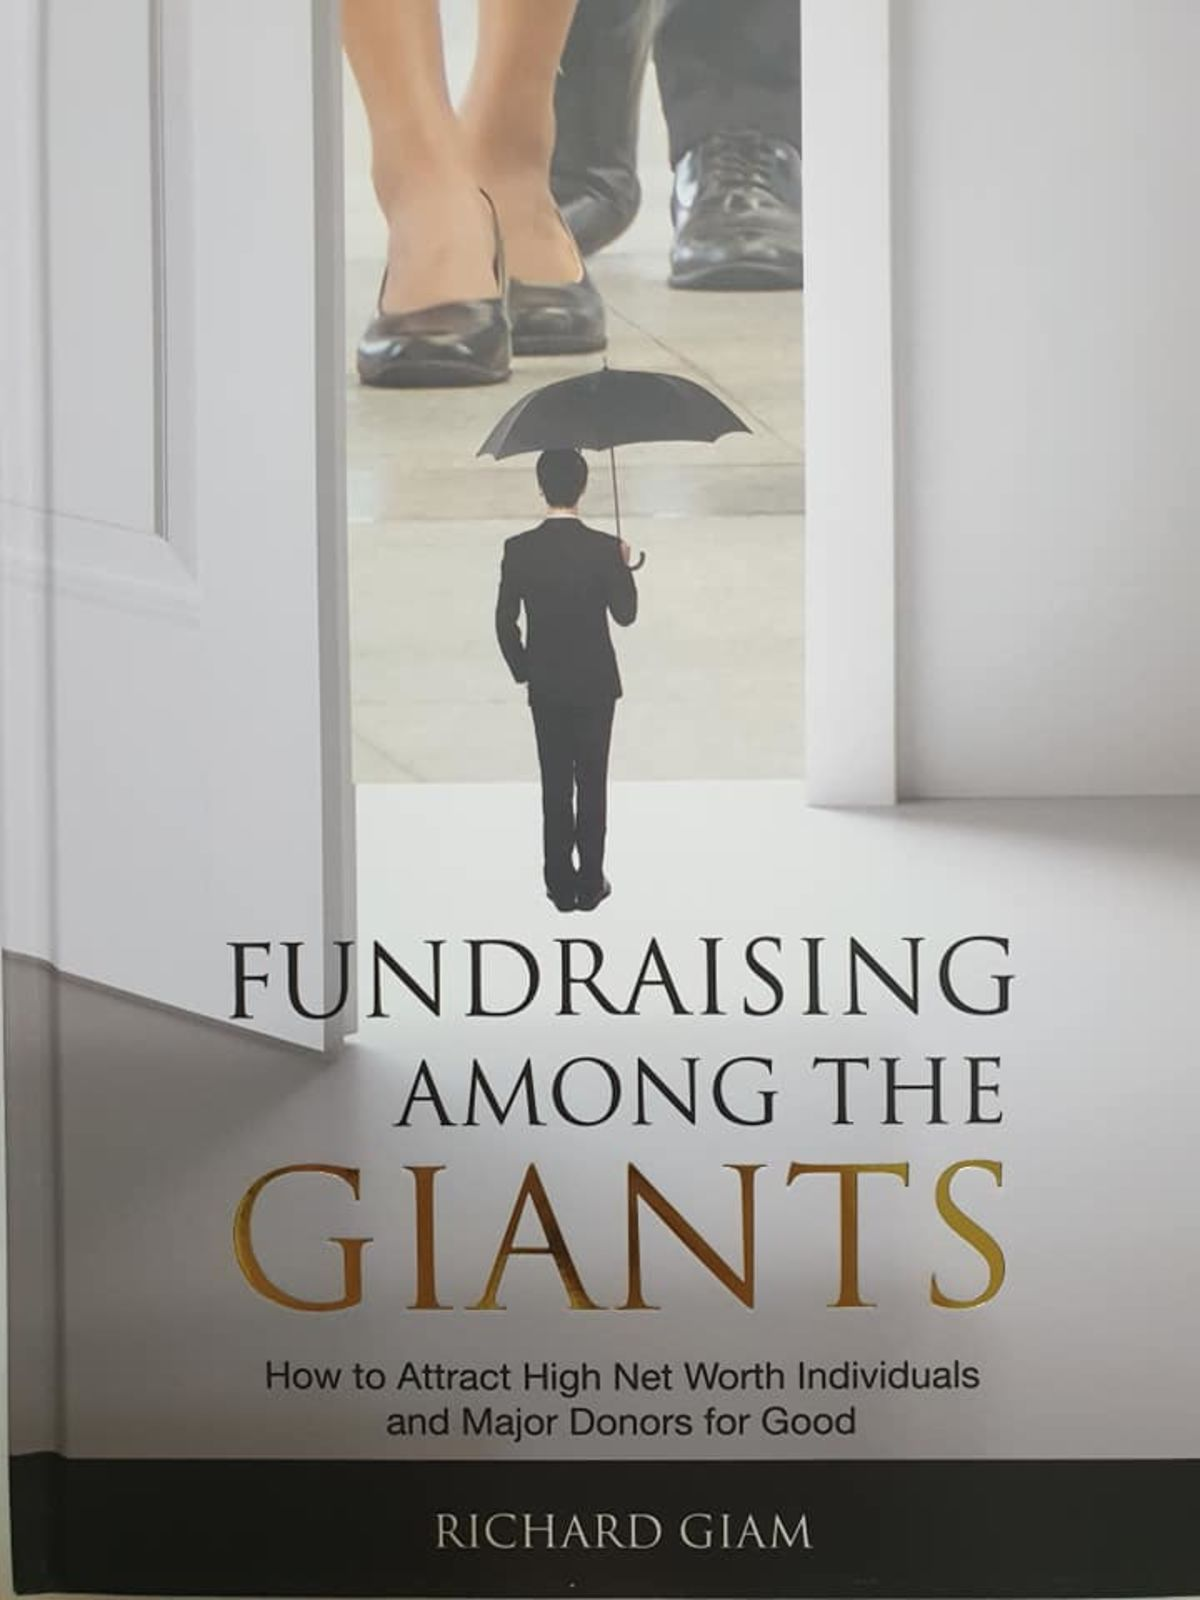 Fundraising Among the Giants